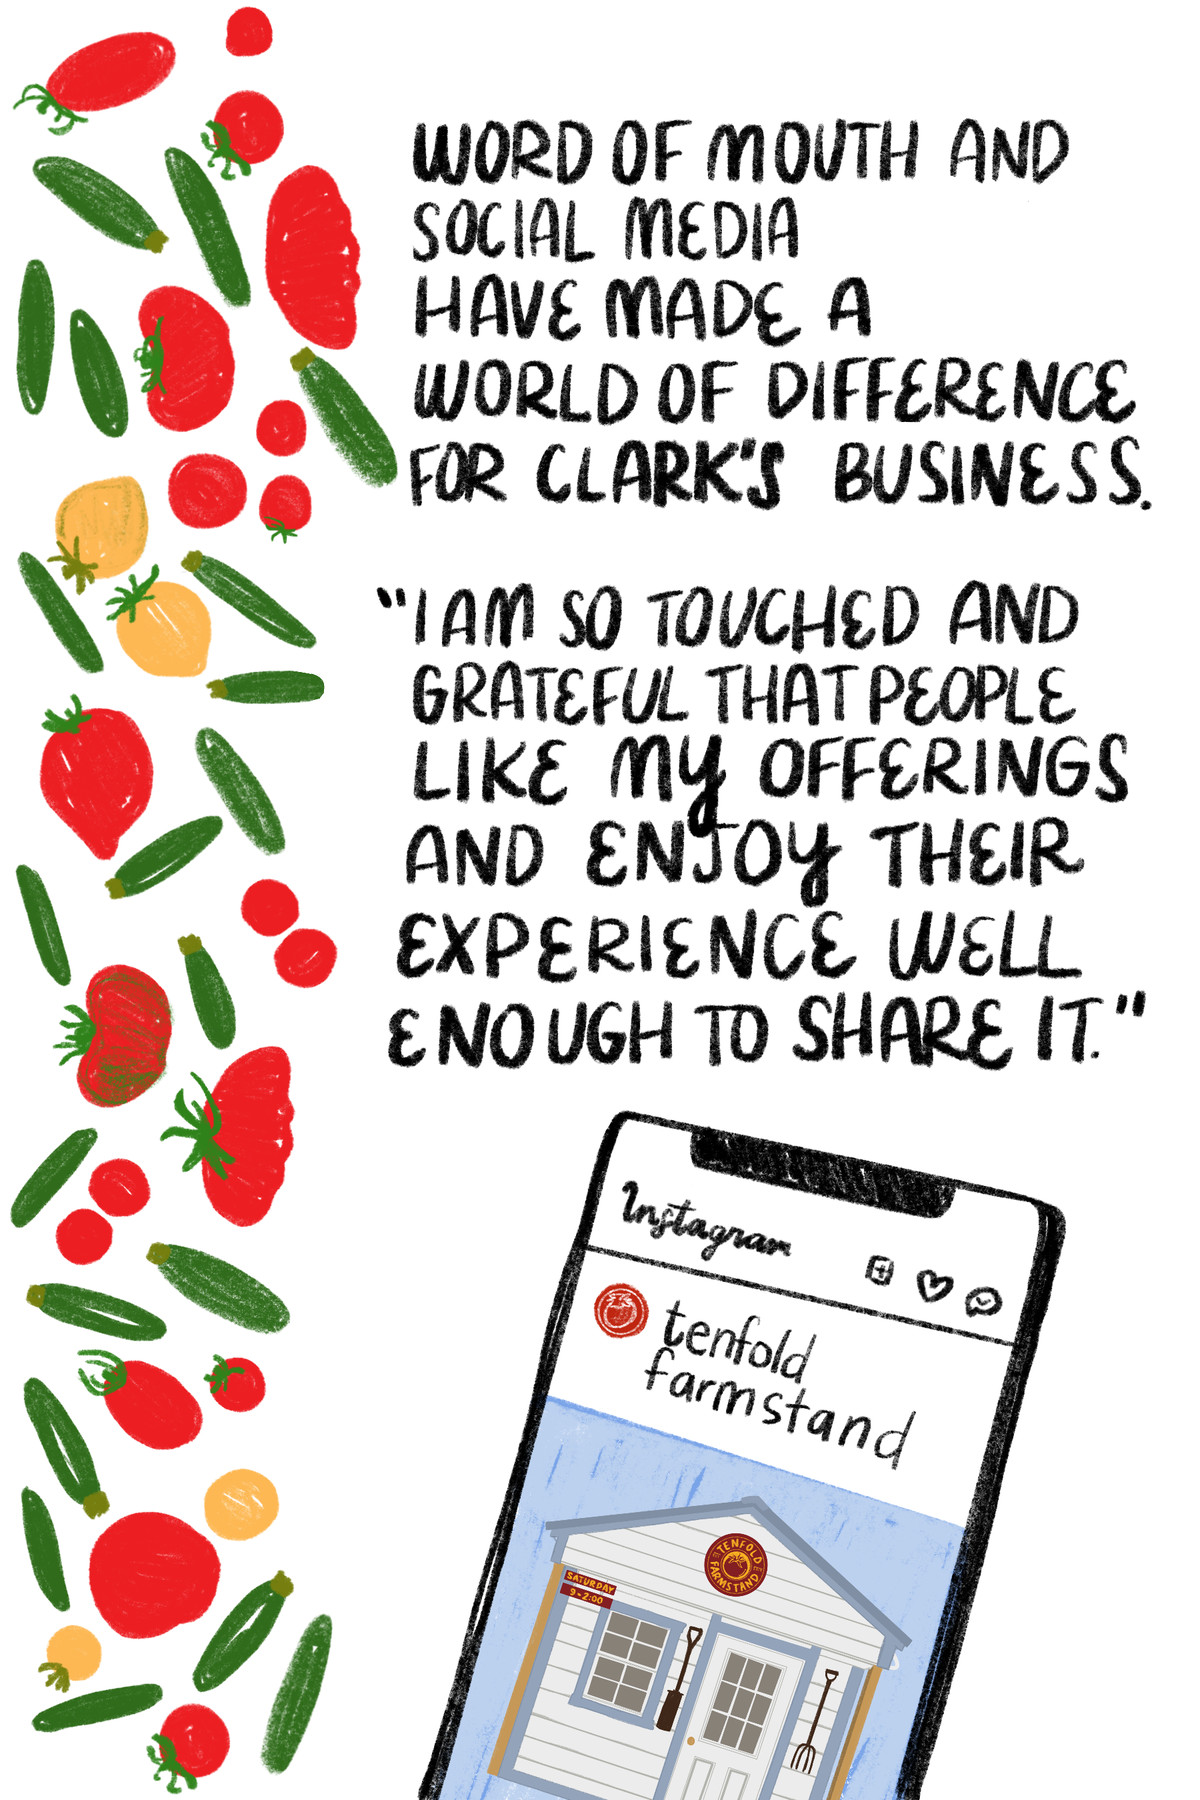 """""""Word of mouth and social media have made a world of difference for Clark's business. """"I am so touched and grateful that people like my offerings and enjoy their experience well enough to share it."""" [Next to the quote are illustrated tomatoes and zucchini; below it is an illustration of a smart phone displaying Tenfold Farmstand's Instagram page.]"""